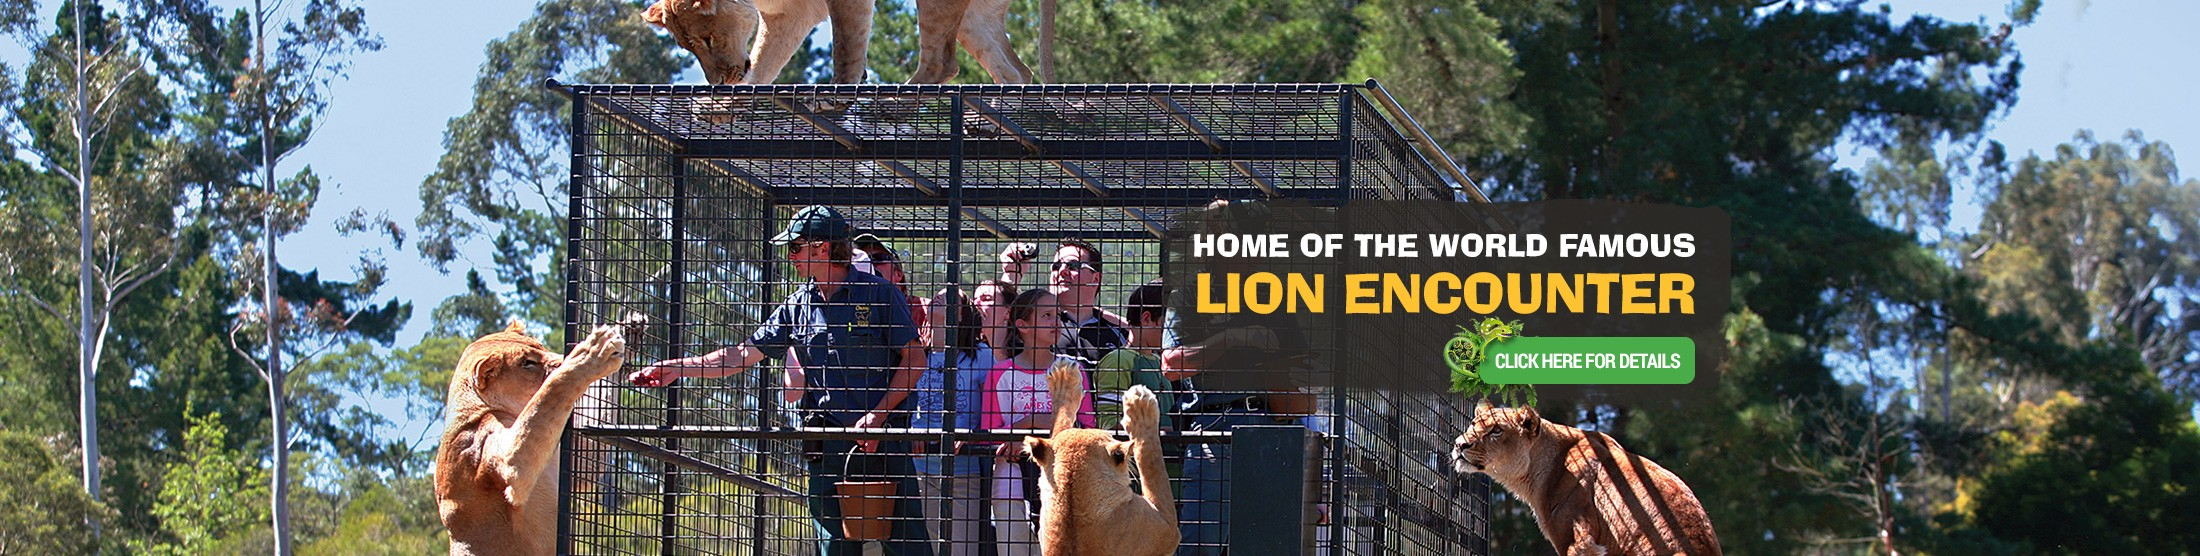 Home of the world famous lion encounter